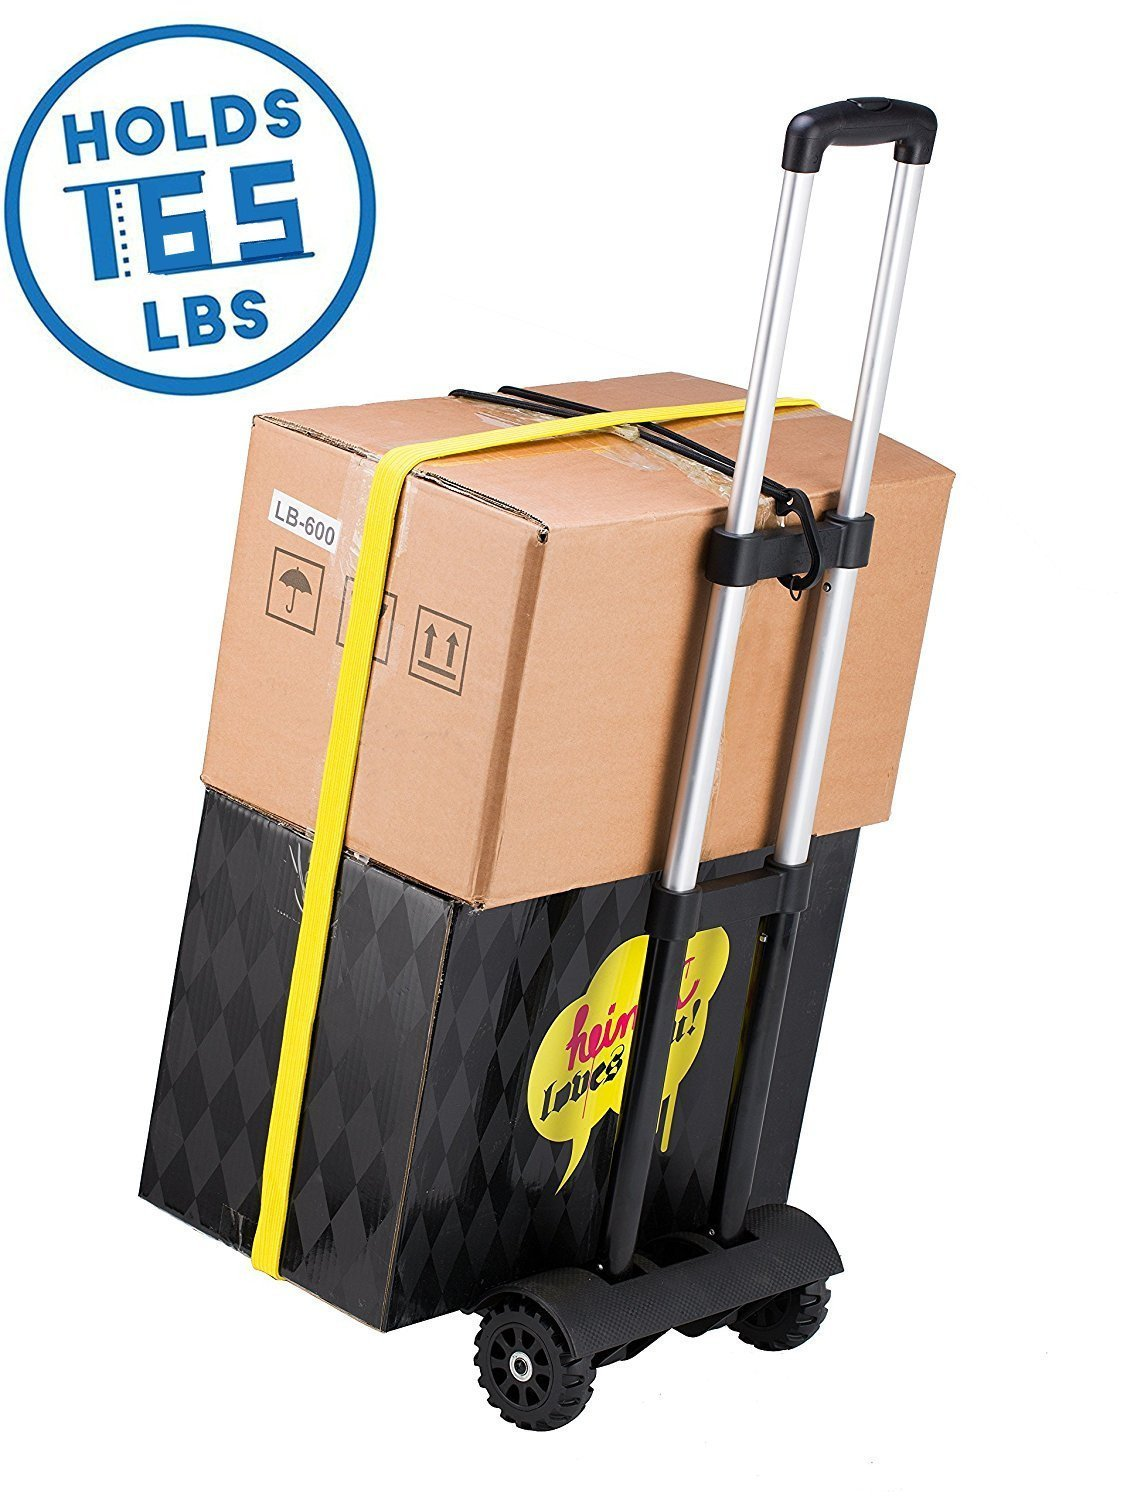 Folding Hand Truck, 75 Kg/165 lbs Heavy Duty Solid Construction Utility Cart Compact and Lightweight for Luggage, Personal, Travel, Auto, Moving and Office Use - Portable Fold Up Dolly(4 wheel-roate) by ROYI (Image #3)